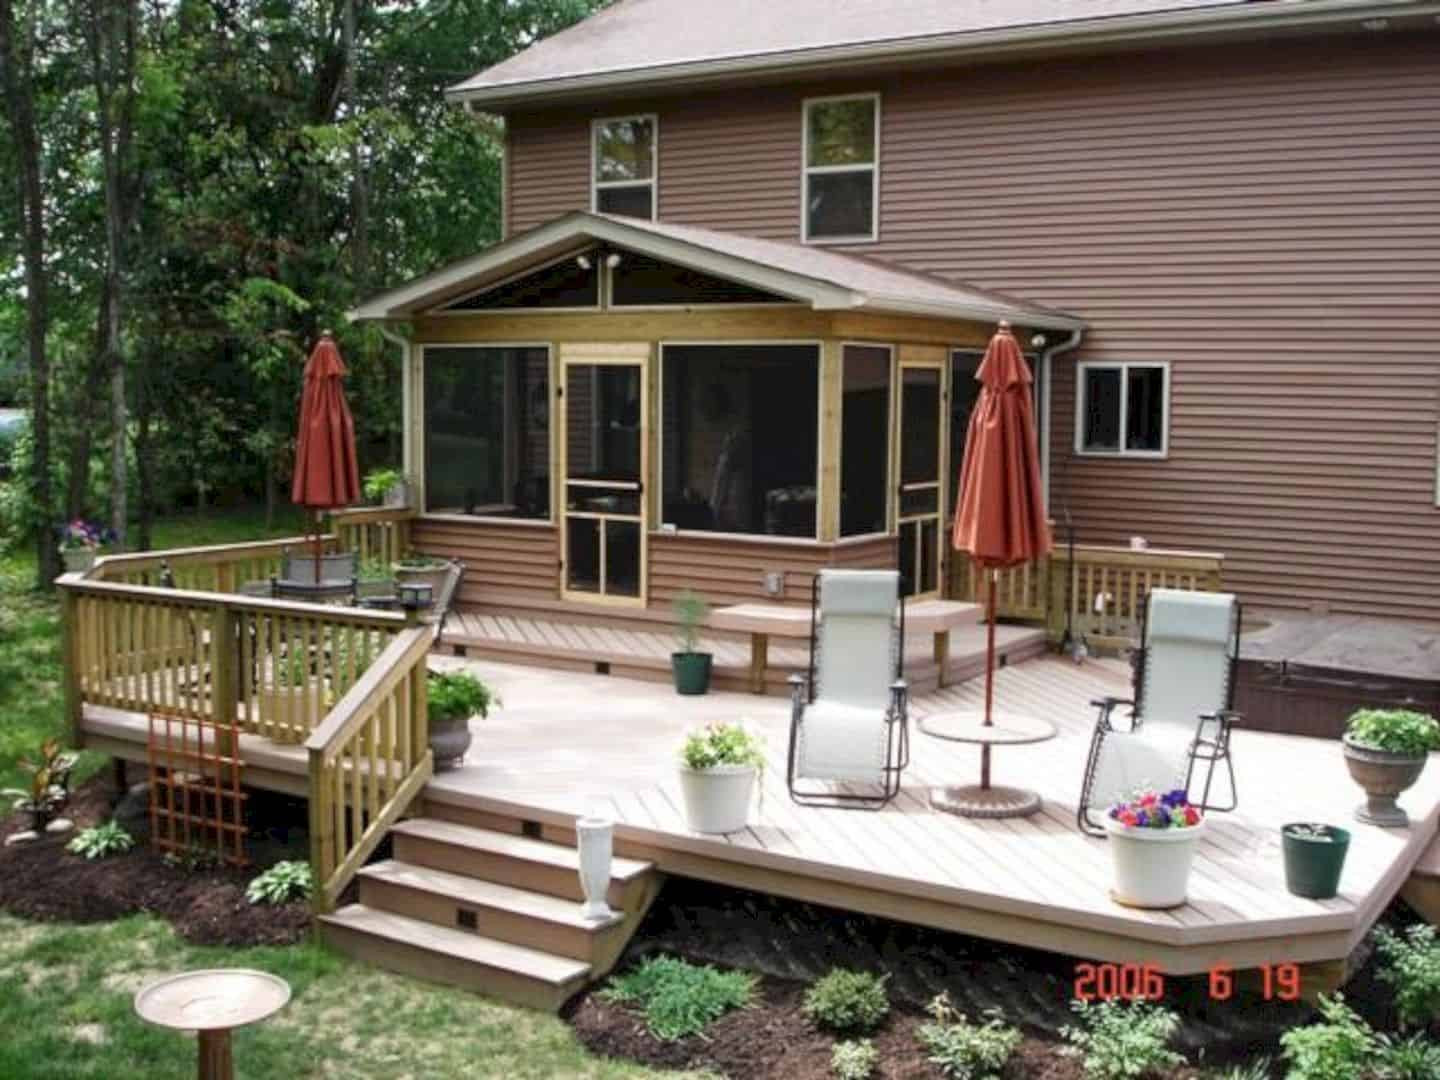 Best ideas about Screen In Patio . Save or Pin 8 Ways To Have More Appealing Screened Porch Deck Now.